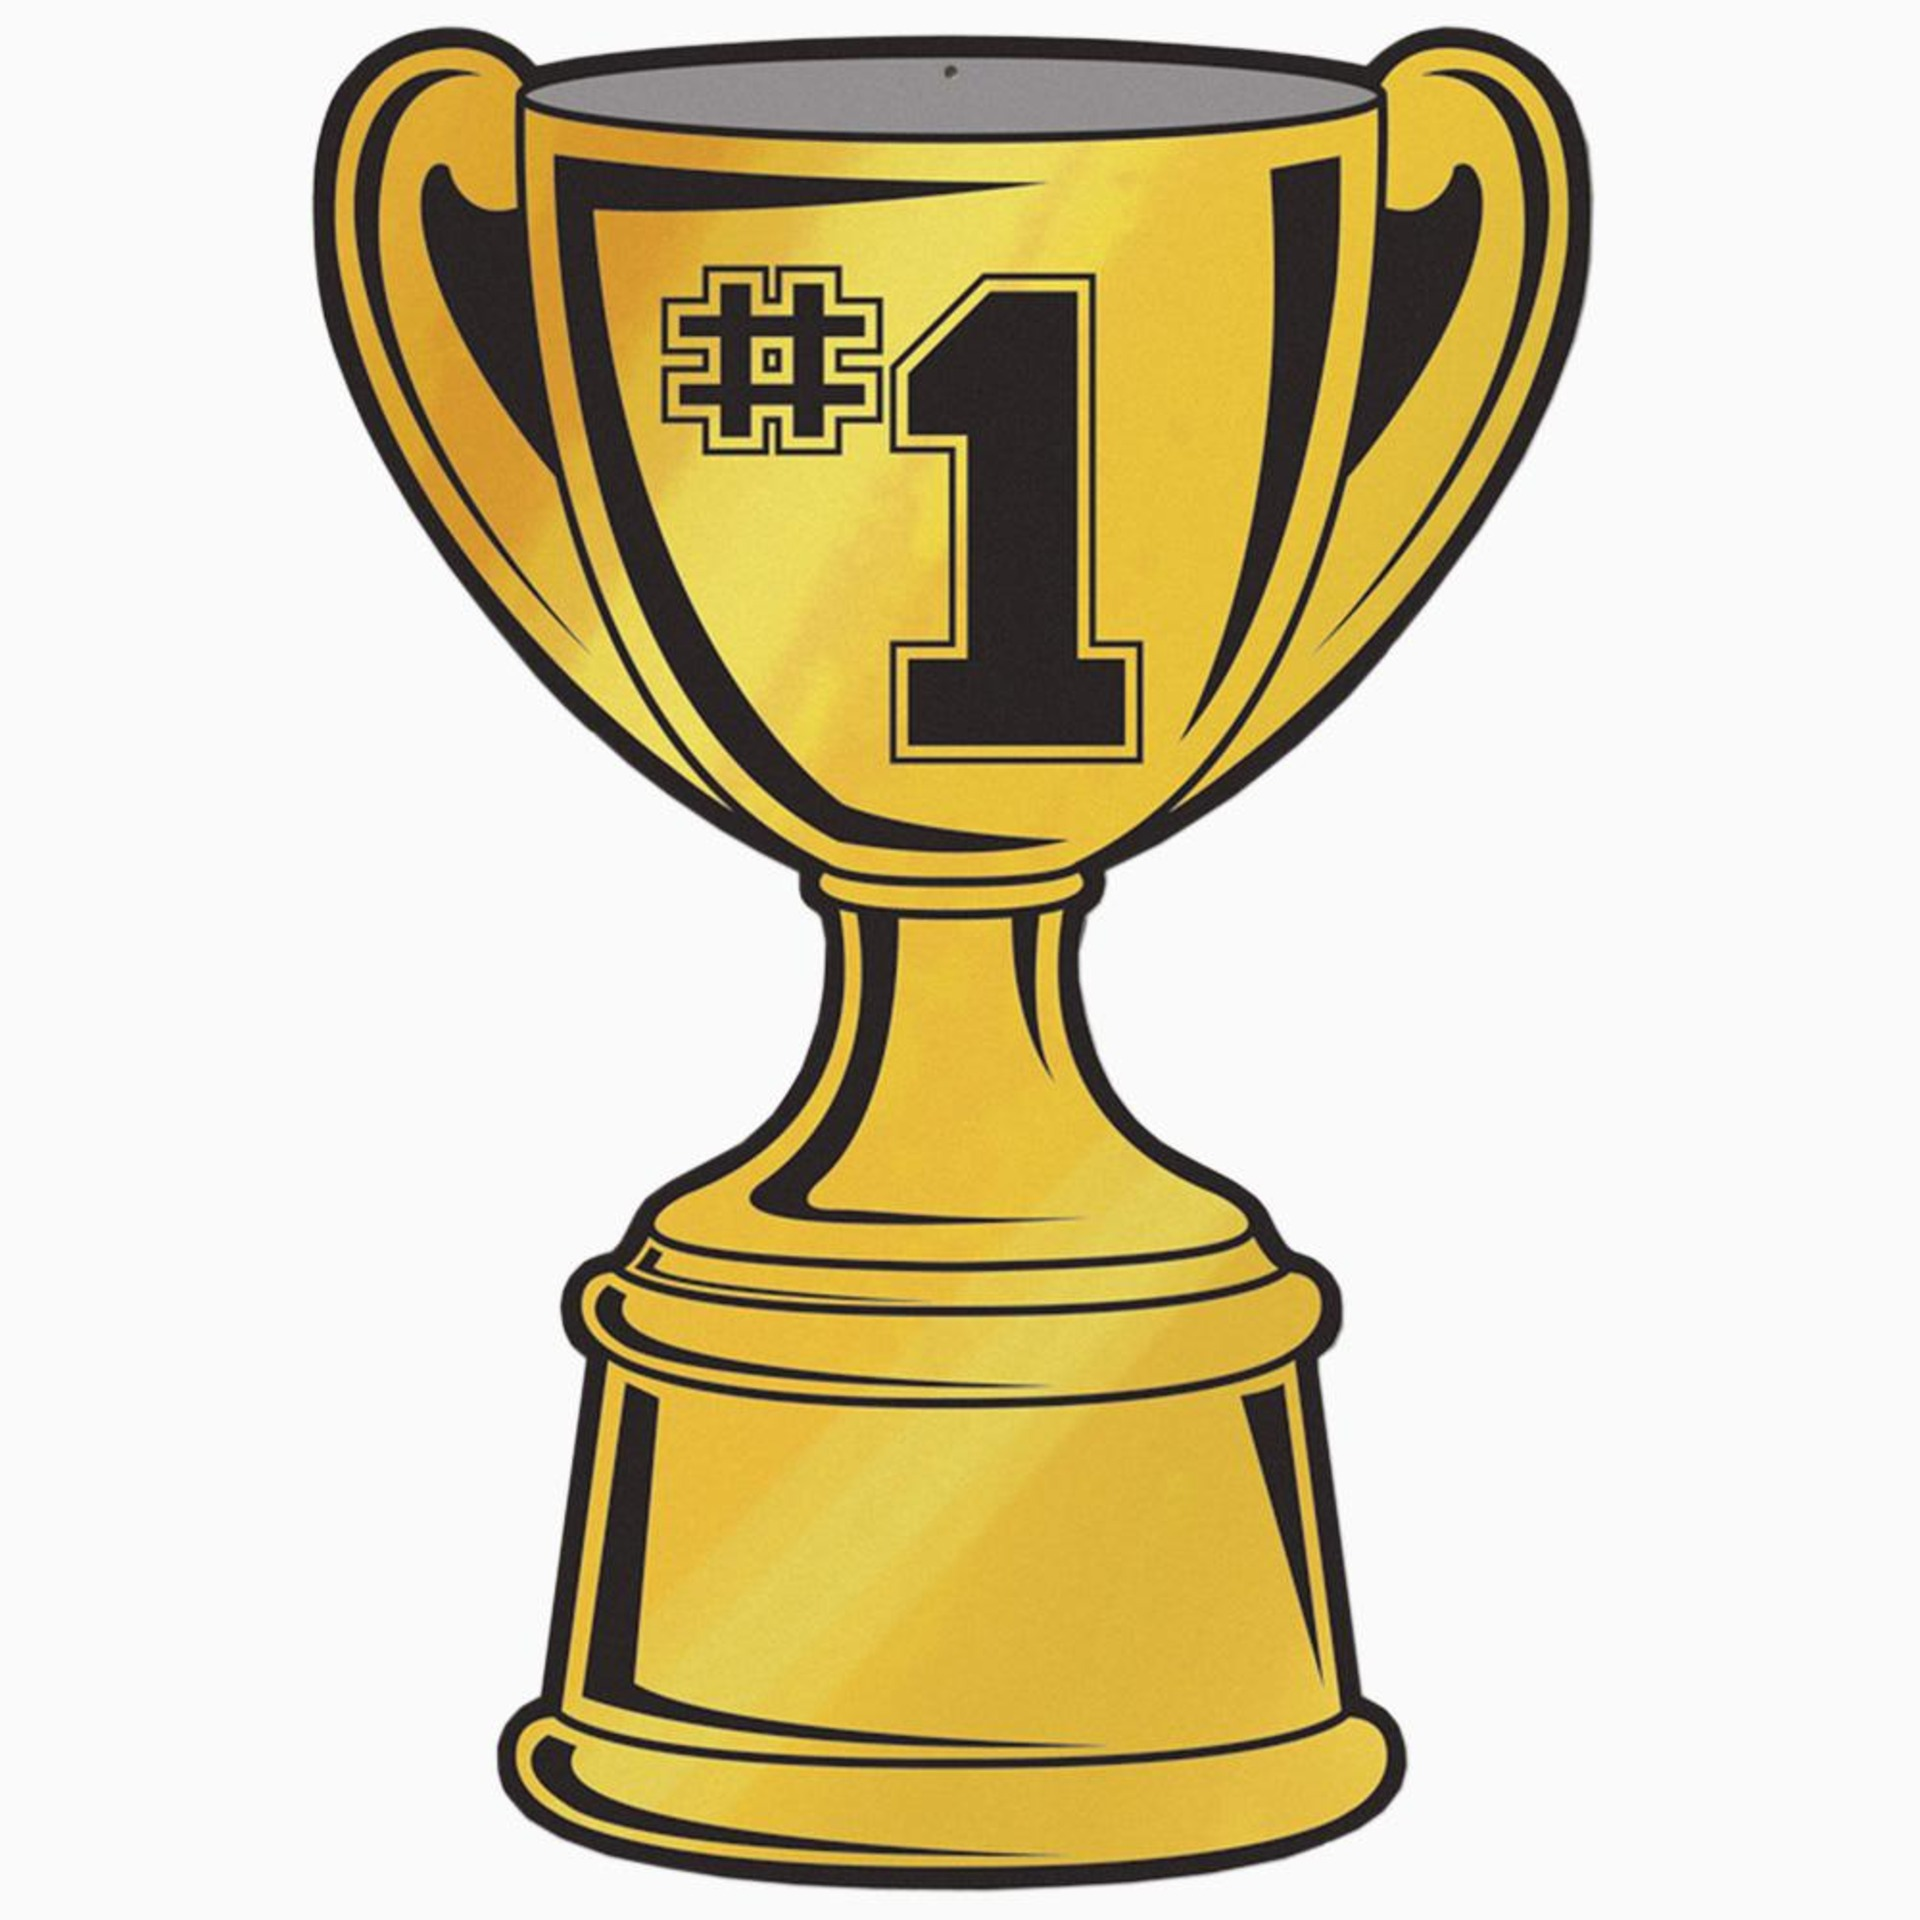 Trophy Clipart Black And White Clipart Panda Free Clipart Images